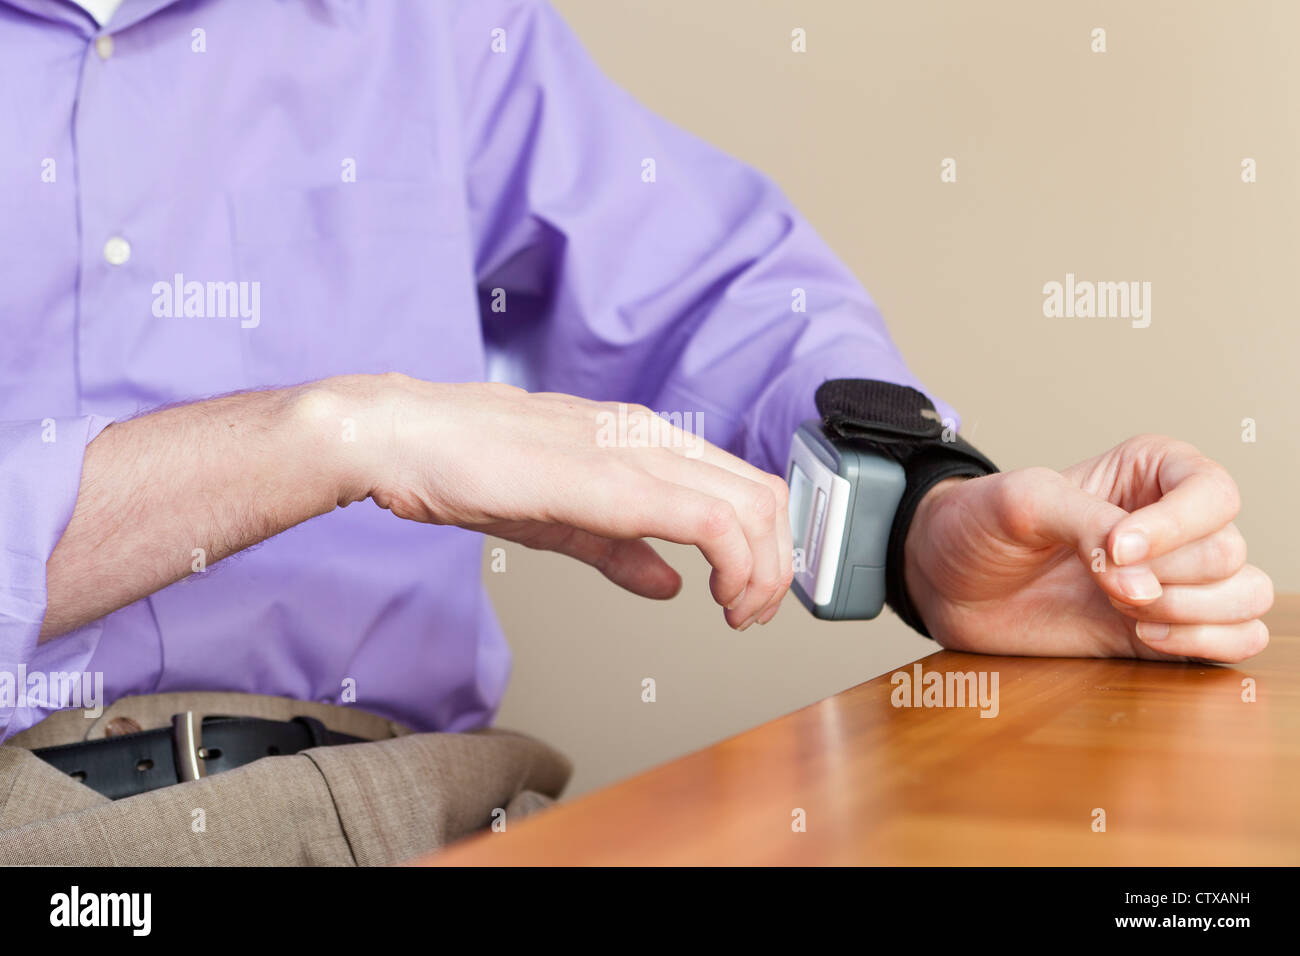 Man with spinal cord injury checking his blood pressure gauge on his wrist - Stock Image